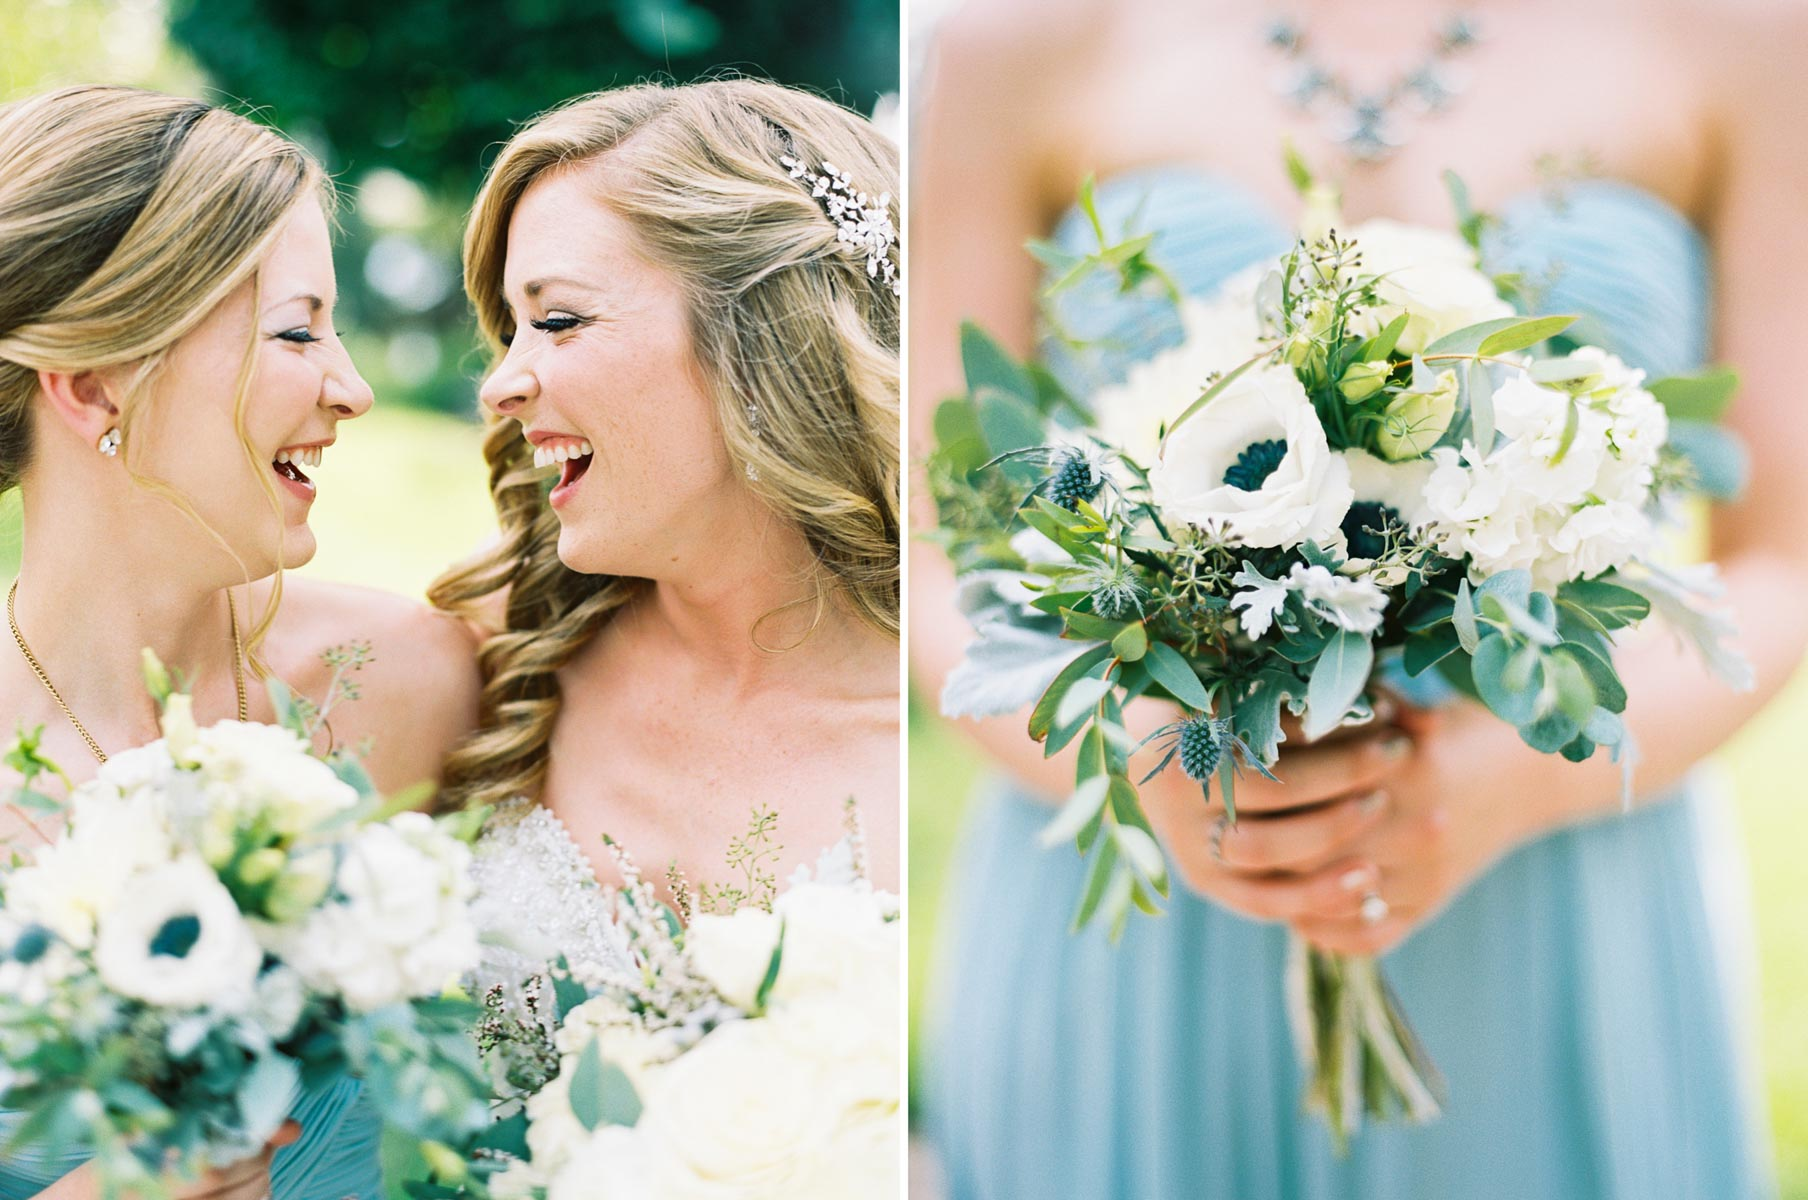 Candid moments at an elegant Arbor Crest Winery Wedding by Spokane Wedding Photographer Anna Peters